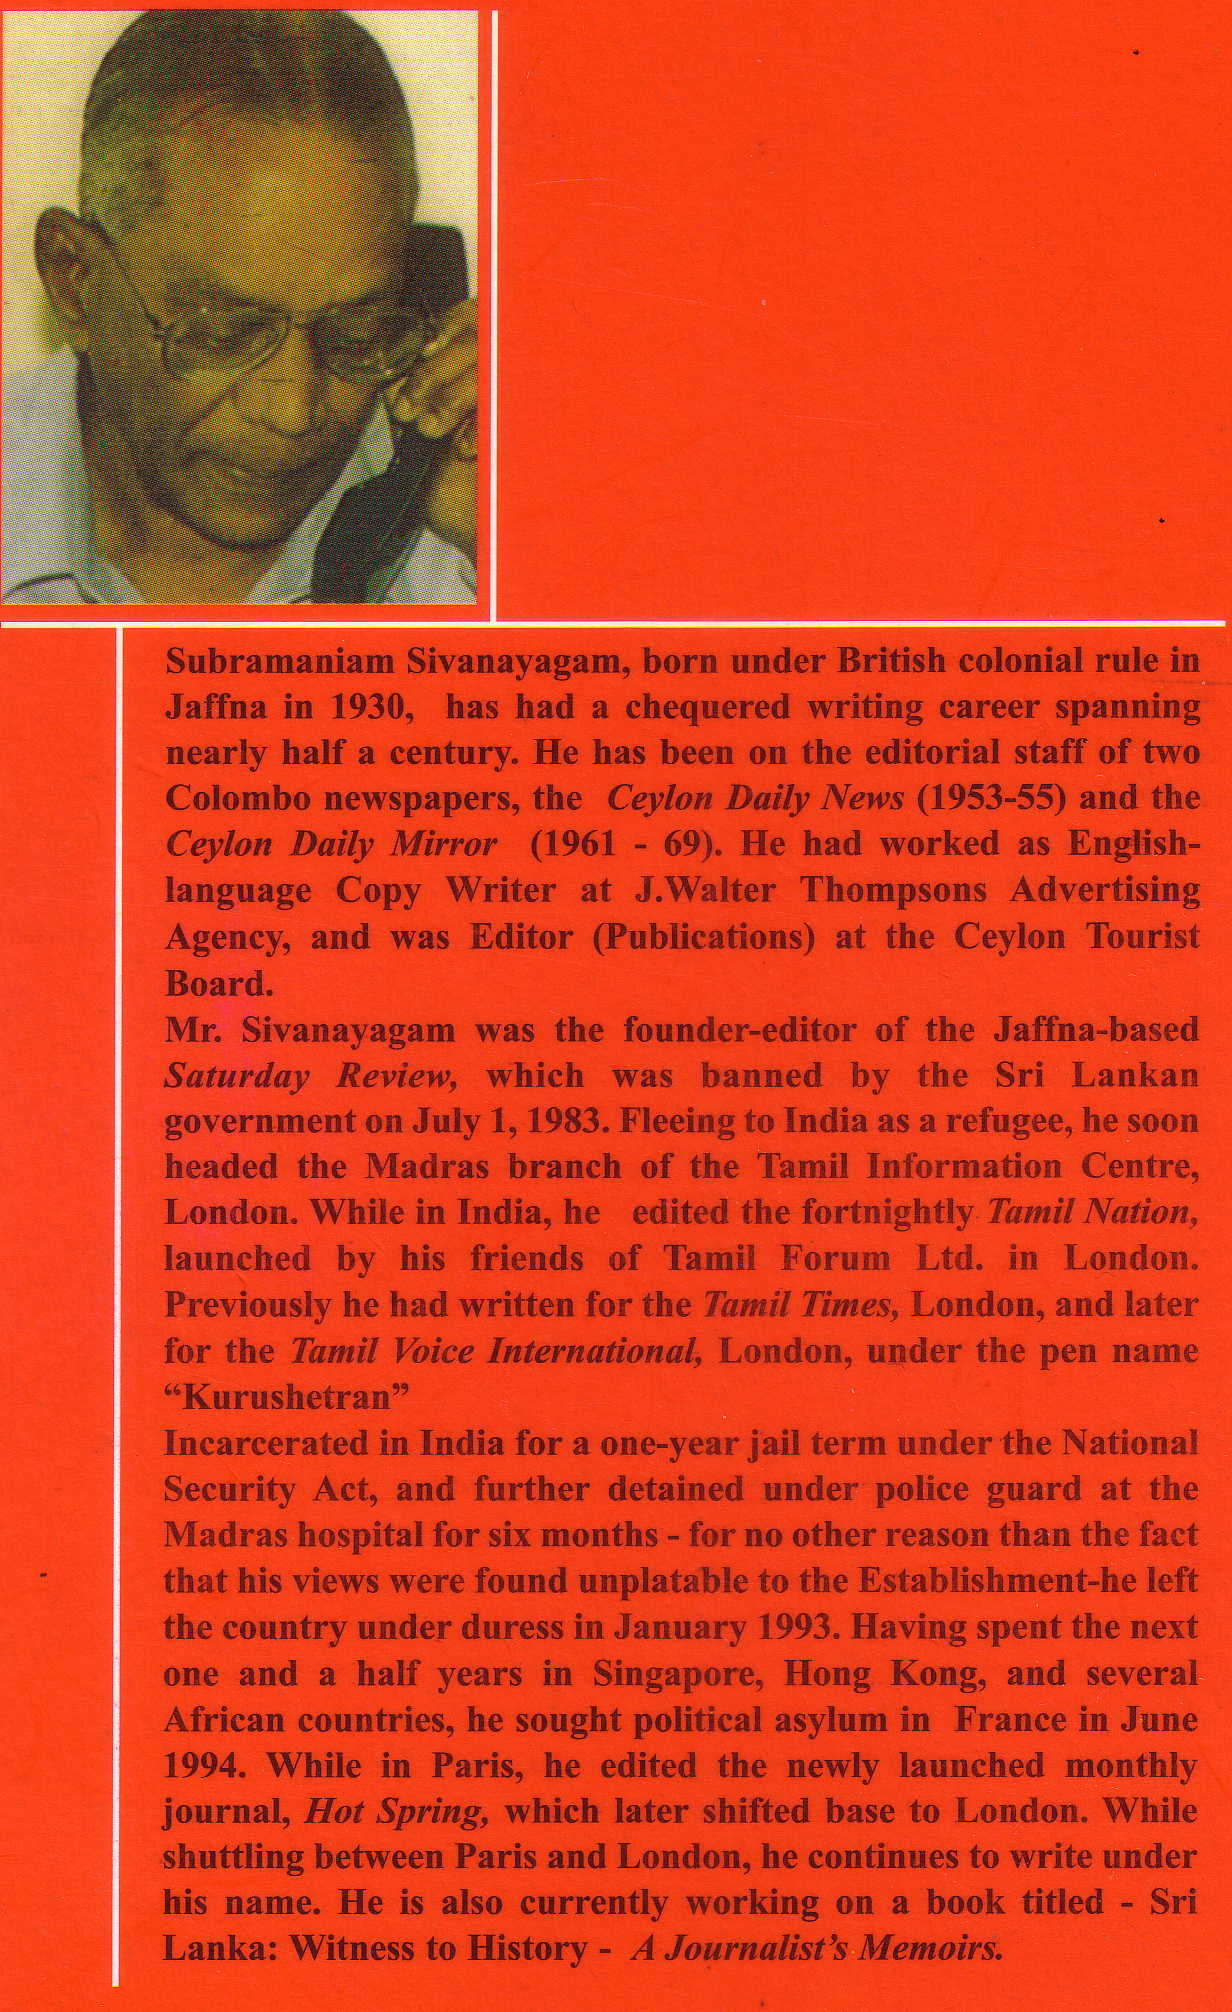 Sivanayagam profile - Back cover of his book 'The Pen and the Gun'